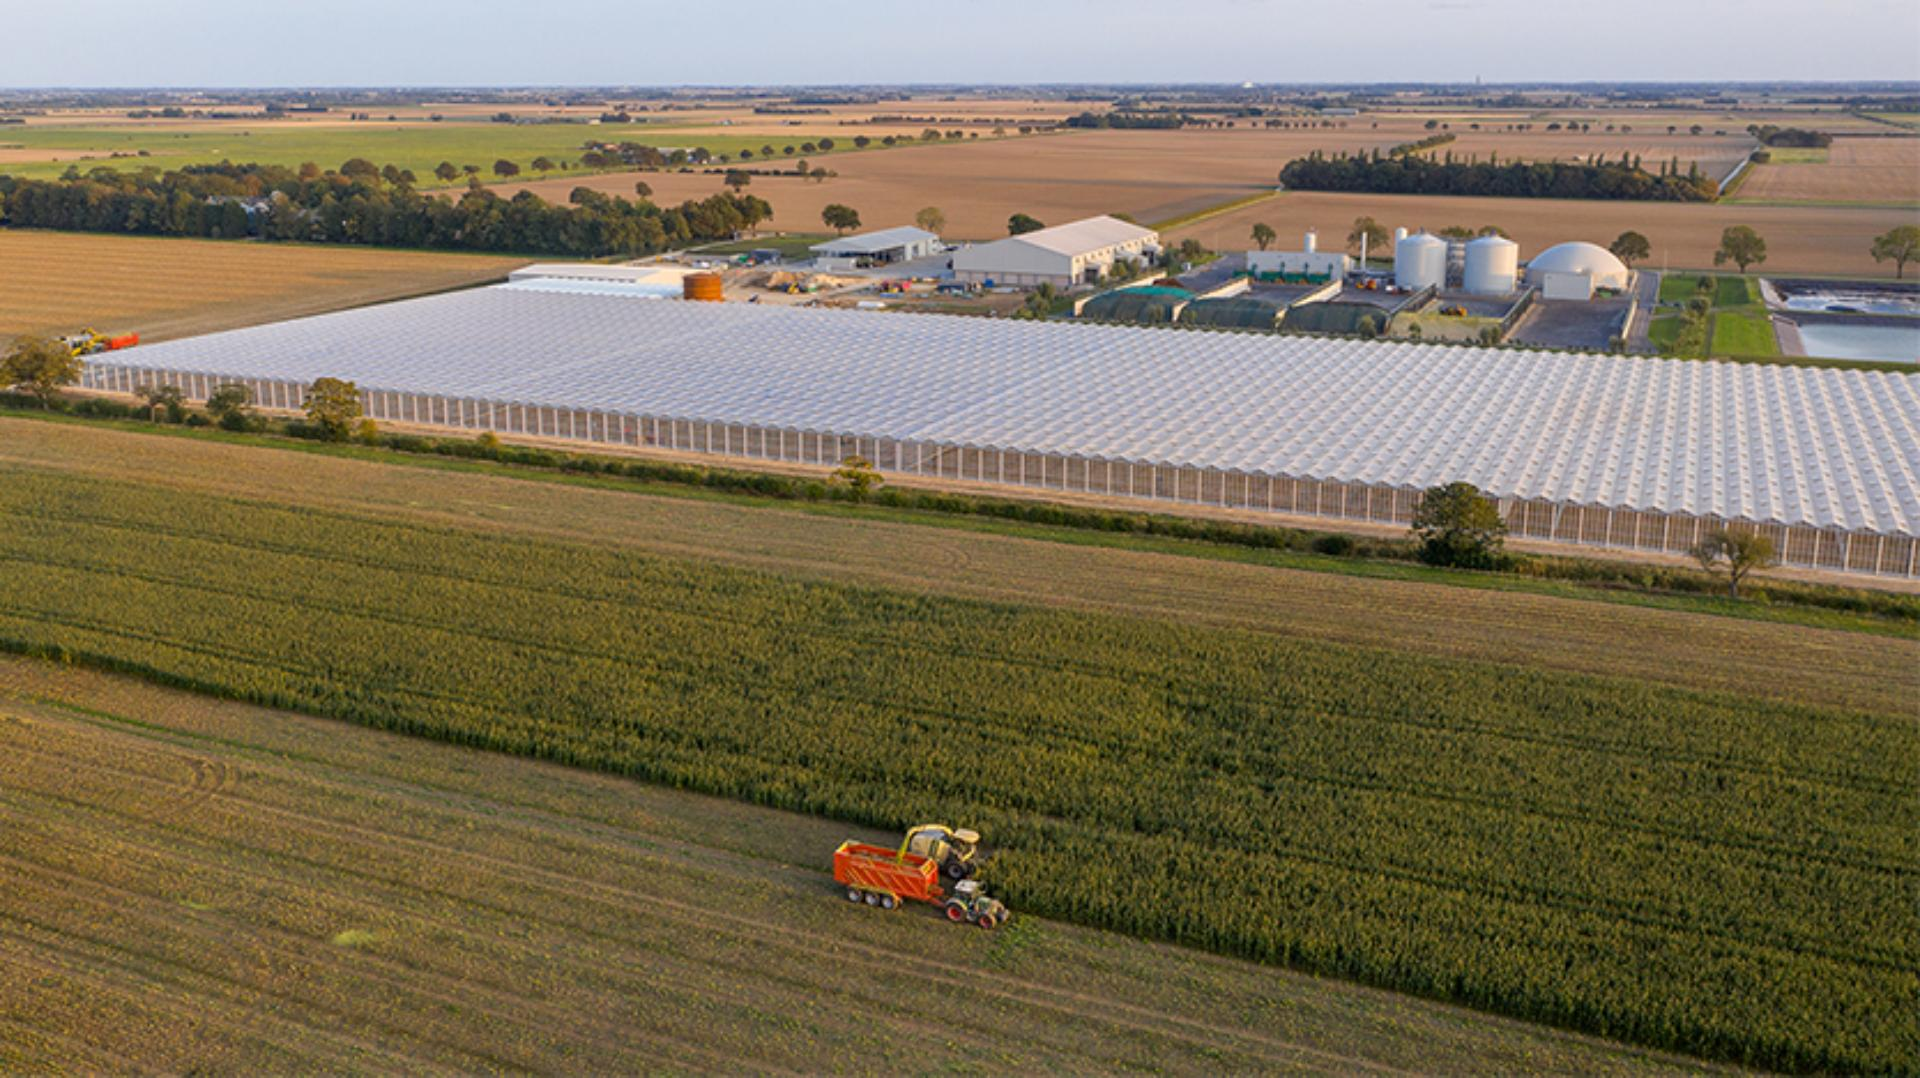 Aerial view of Dyson Farming greenhouses in Lincolnshire